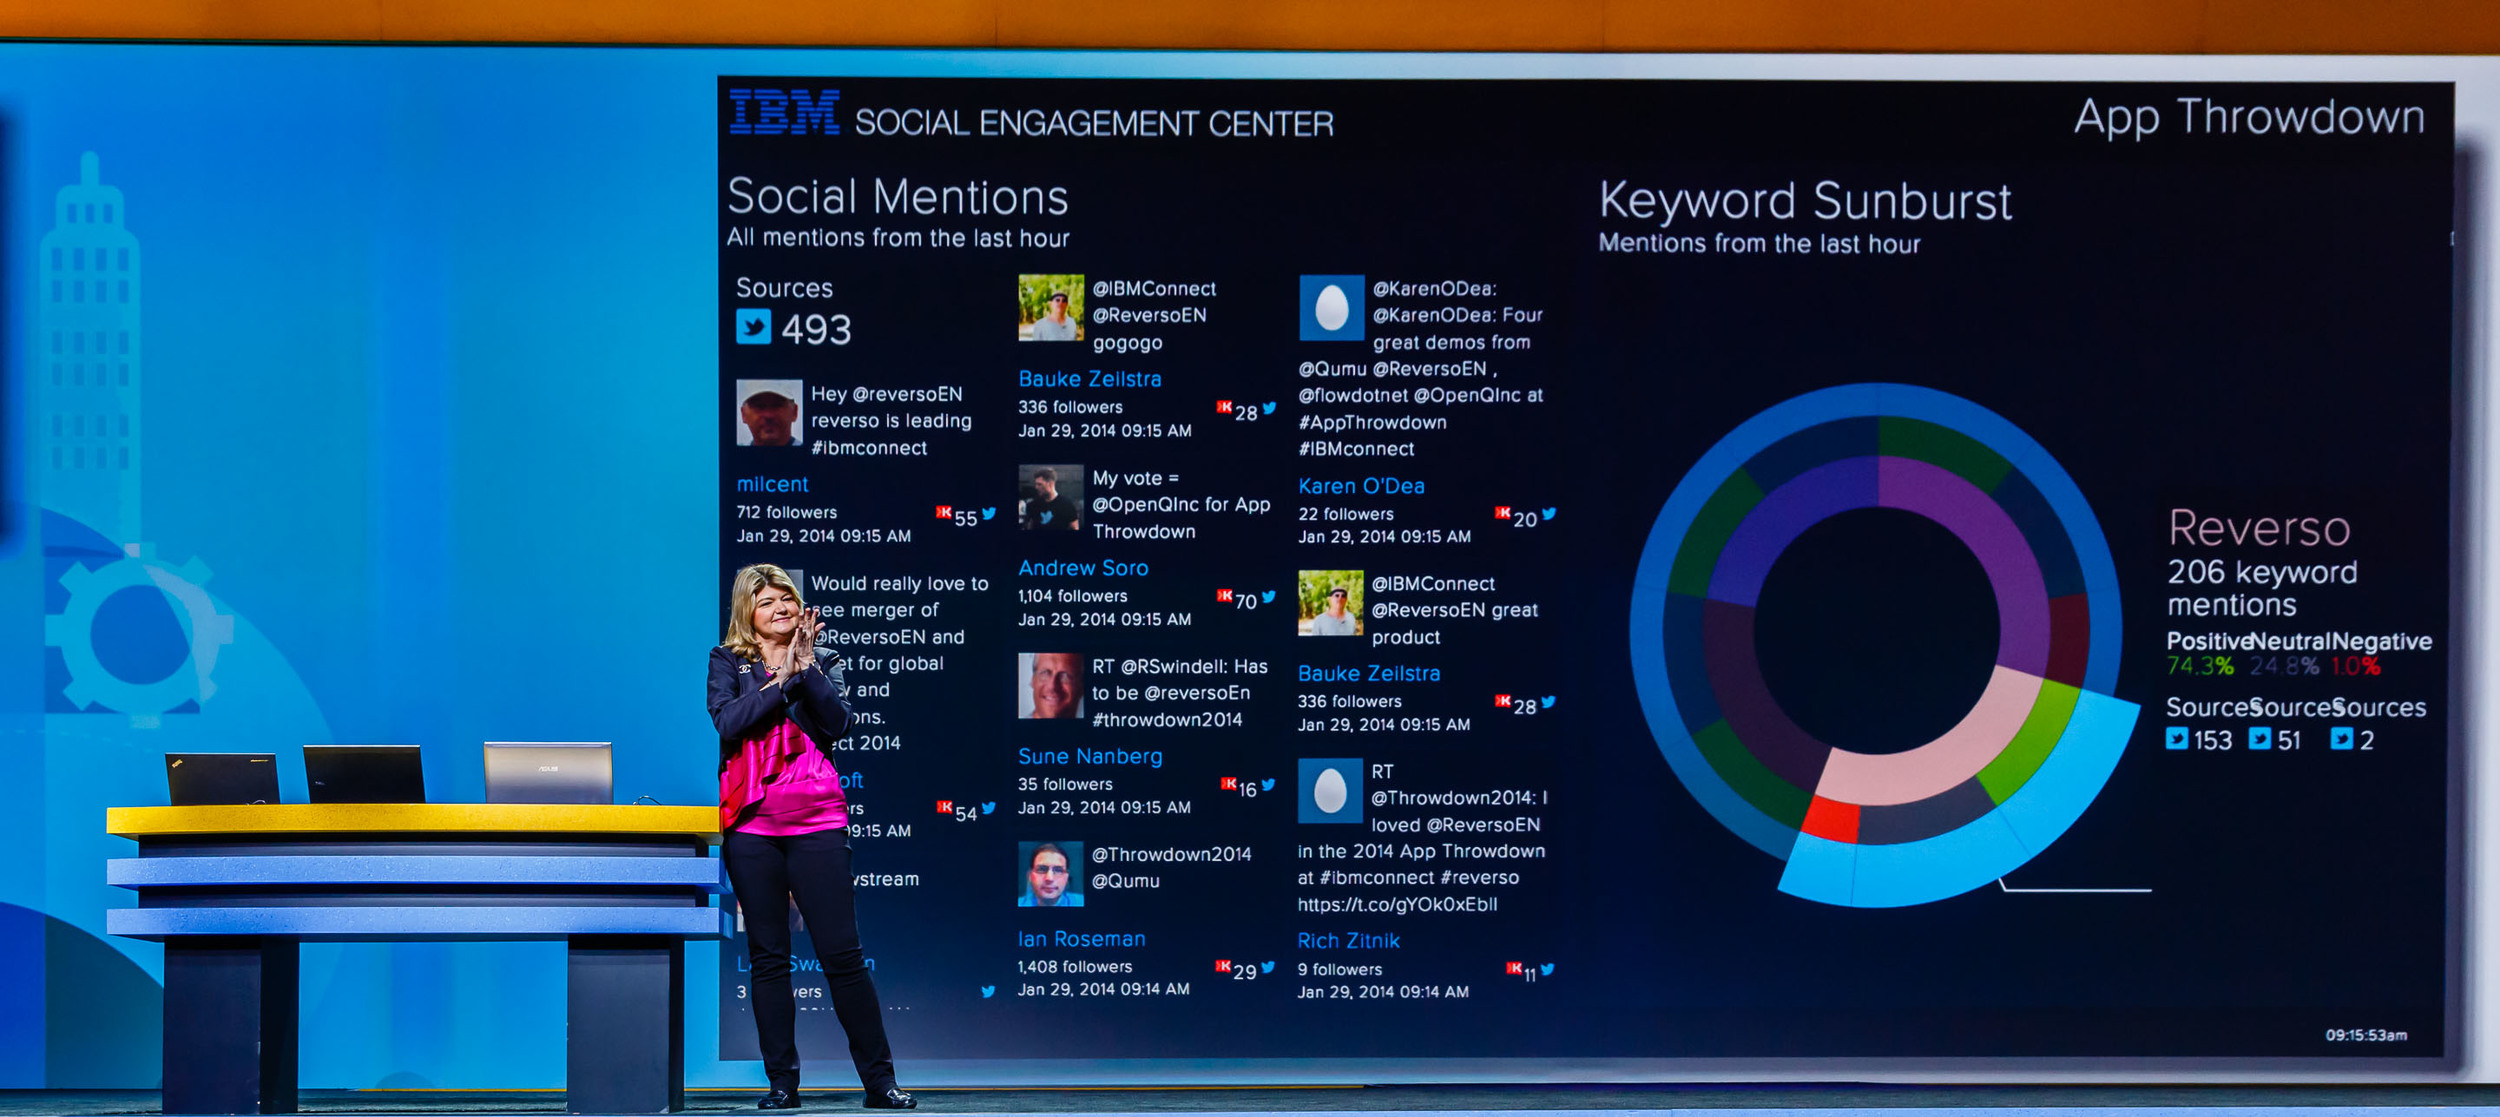 20140129091545 27198 WED IBM CONNECT 2014 LOW_RES SOCIAL ENGAGEMENT CENTER  SANDY CARTER  REVERSO.JPG